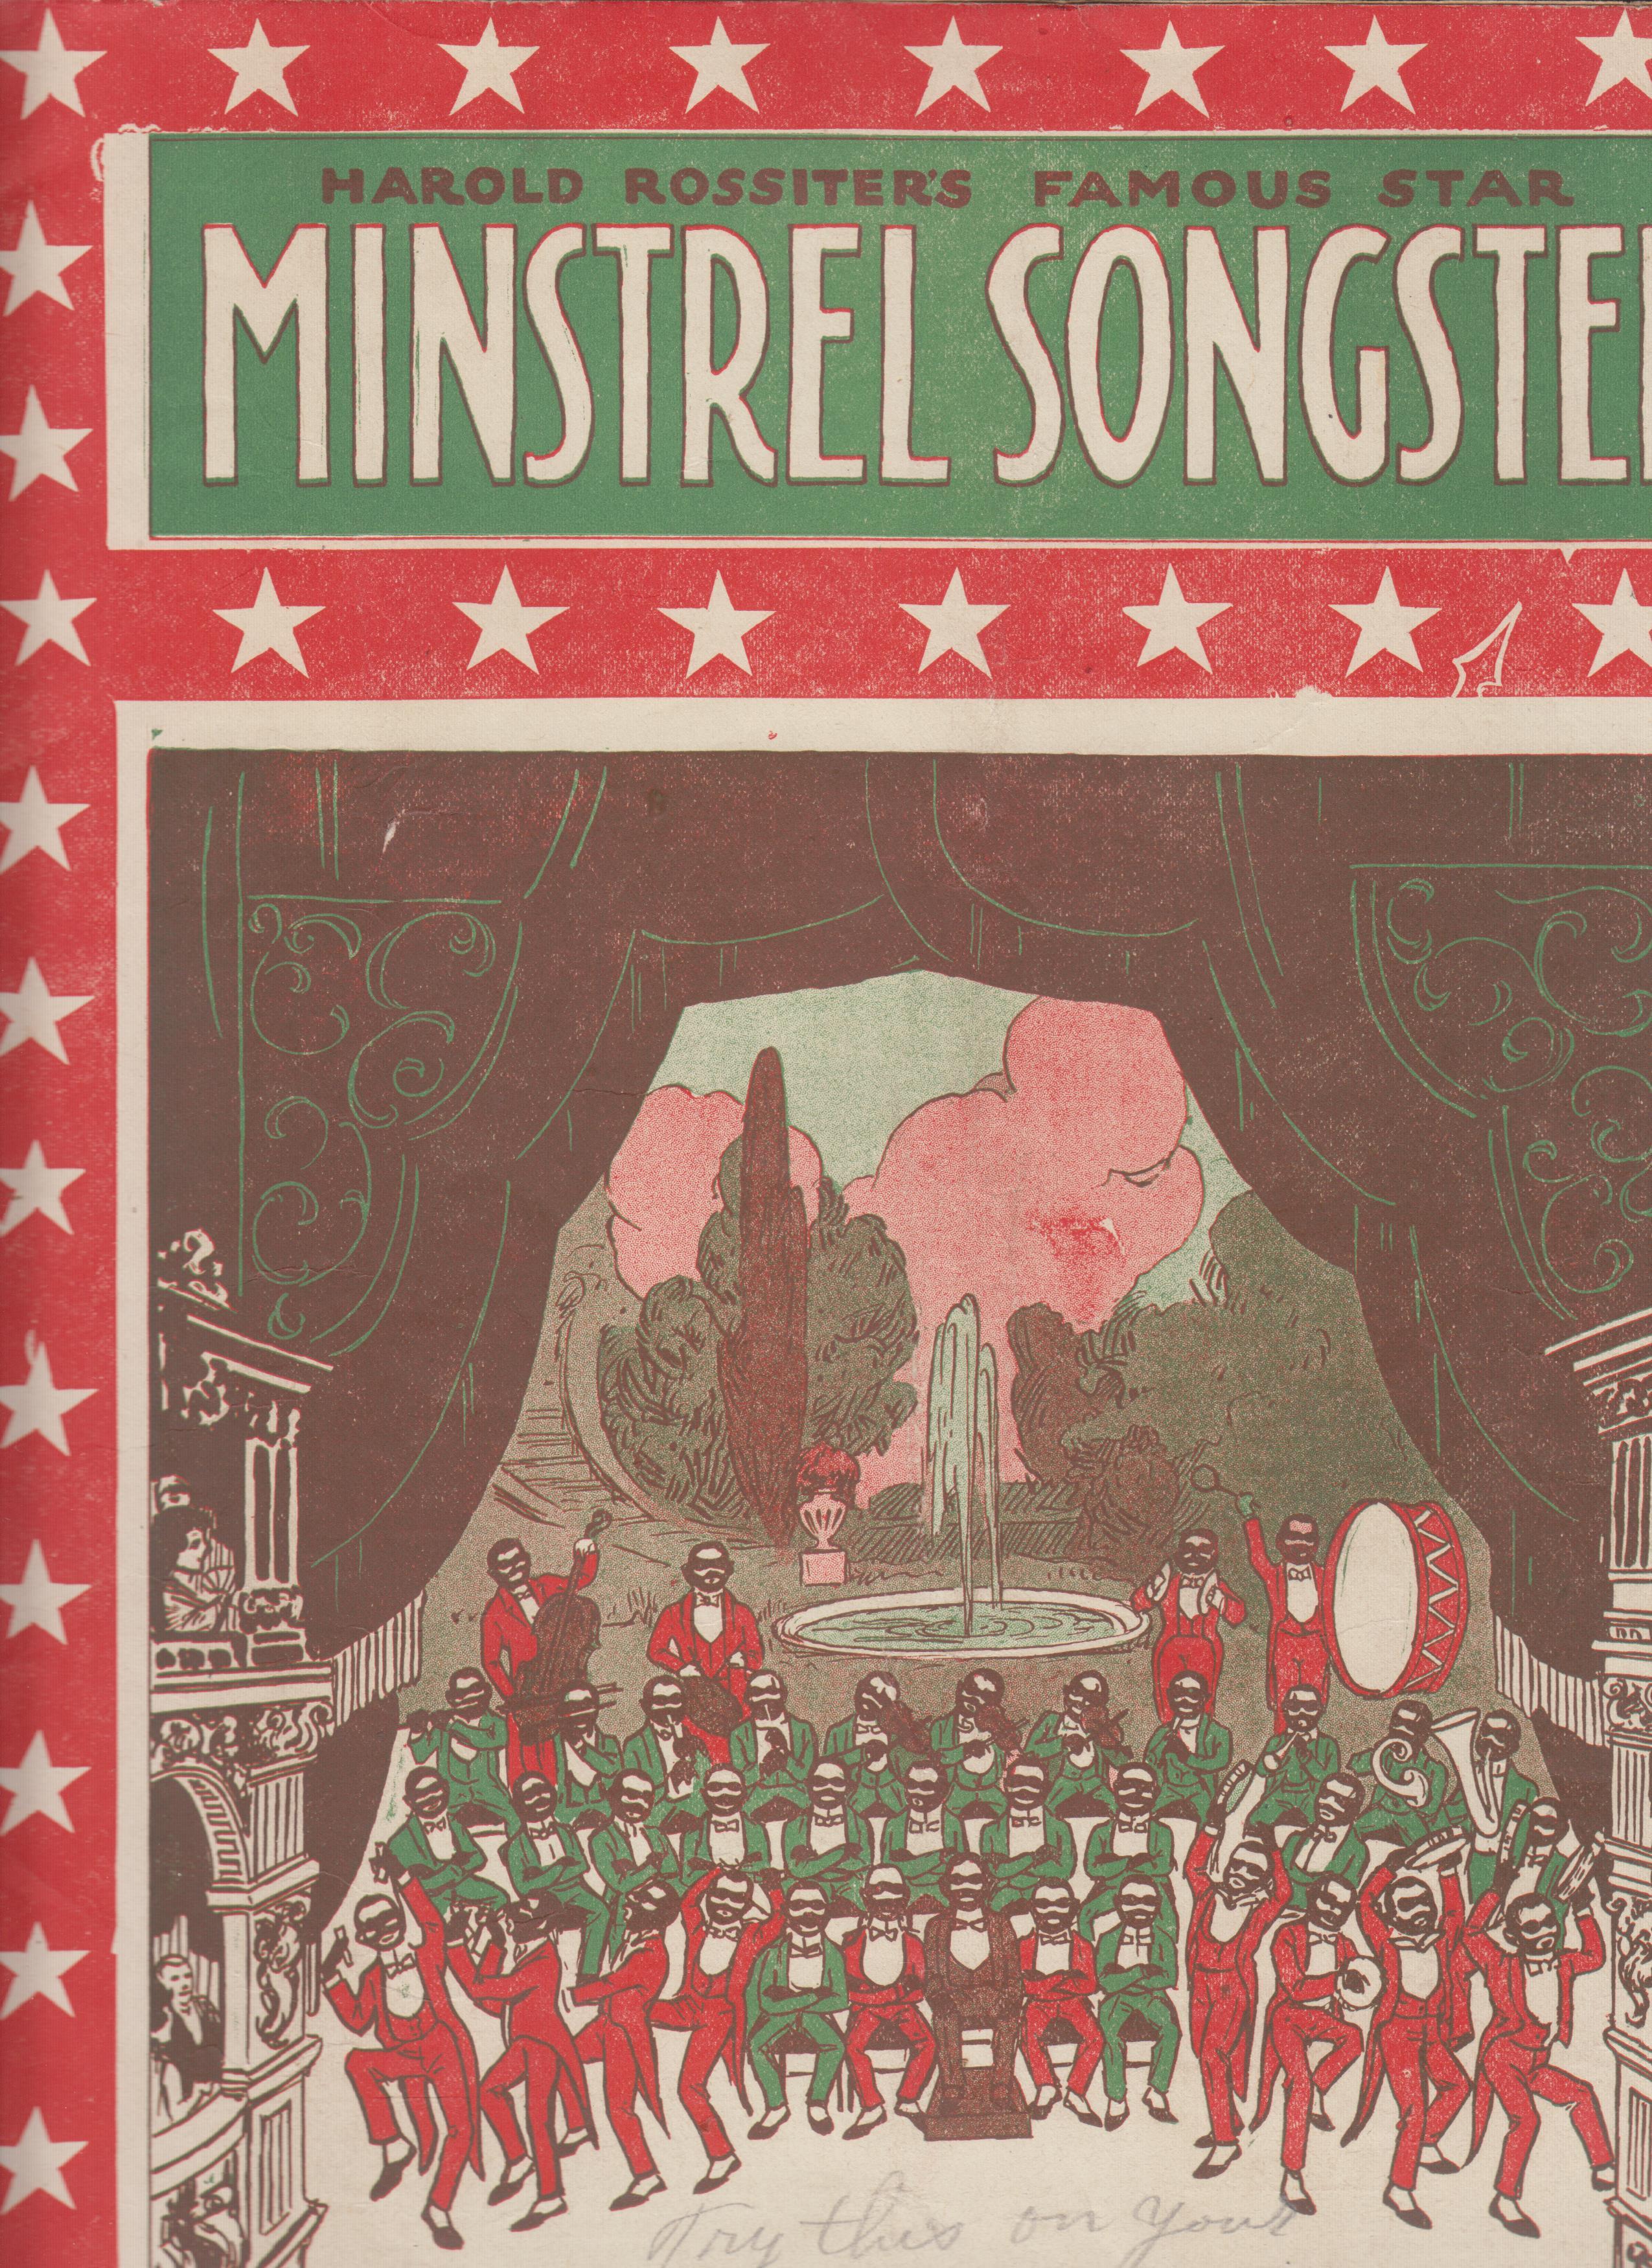 Image for Harold Rossiter's Popular Collection of Song Hits of the Day by the World's Best Writers  Harold Rossiter's Famous Star Minstrel Songster [cover title]